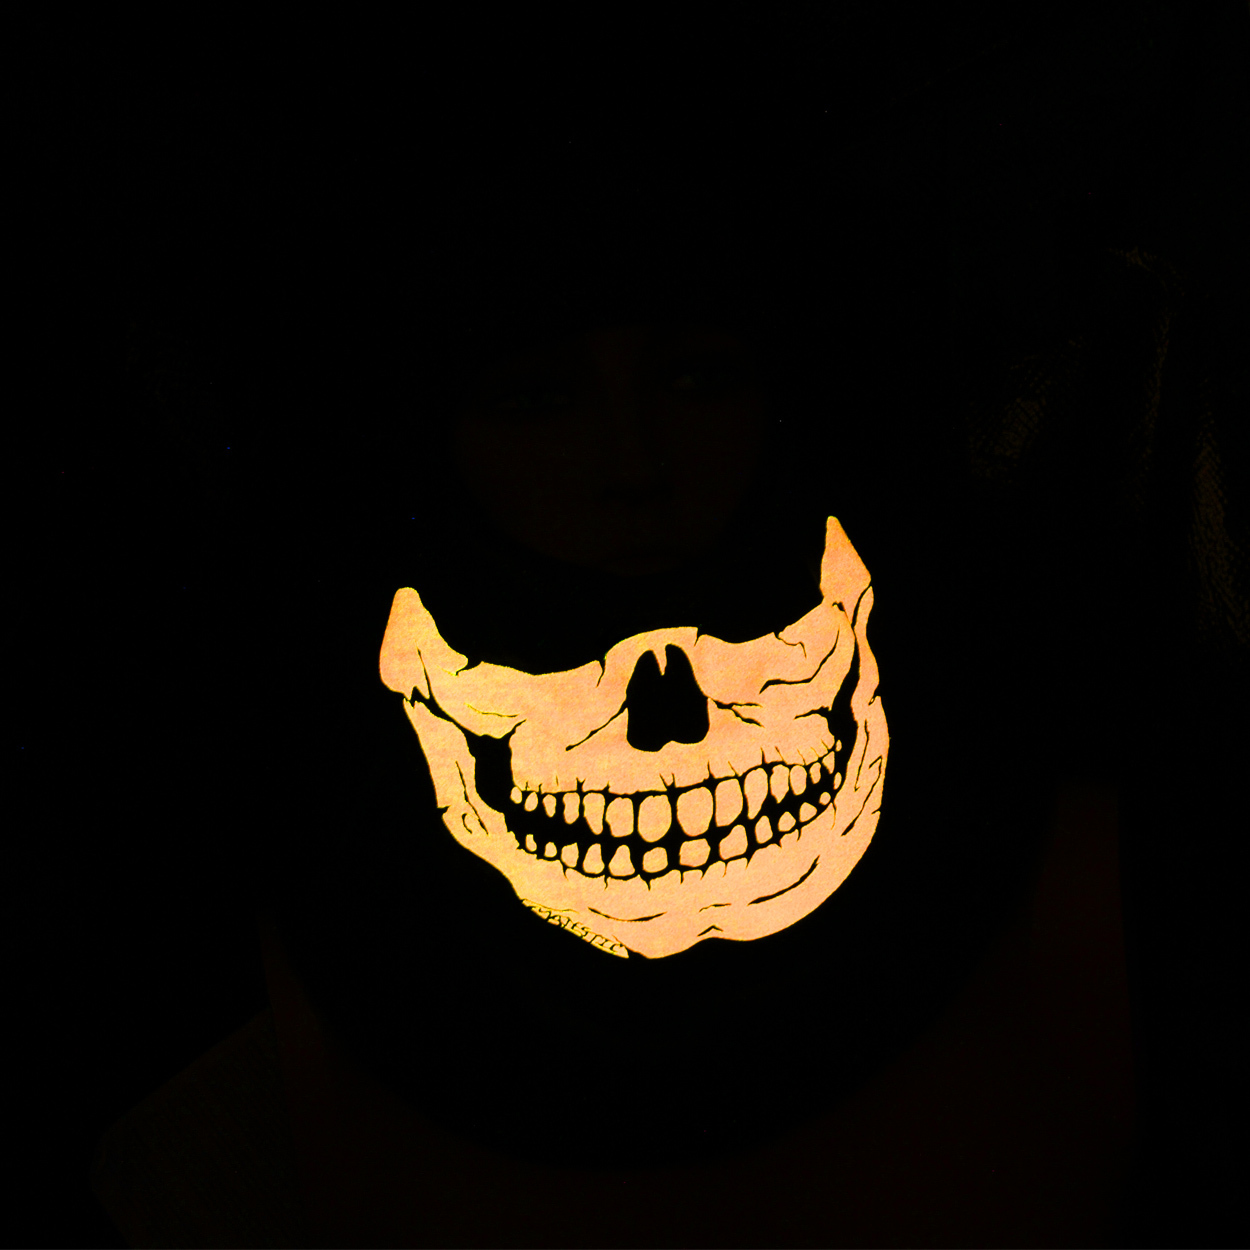 FIRE INK GLOW IN THE DARK ORANGE SKULL